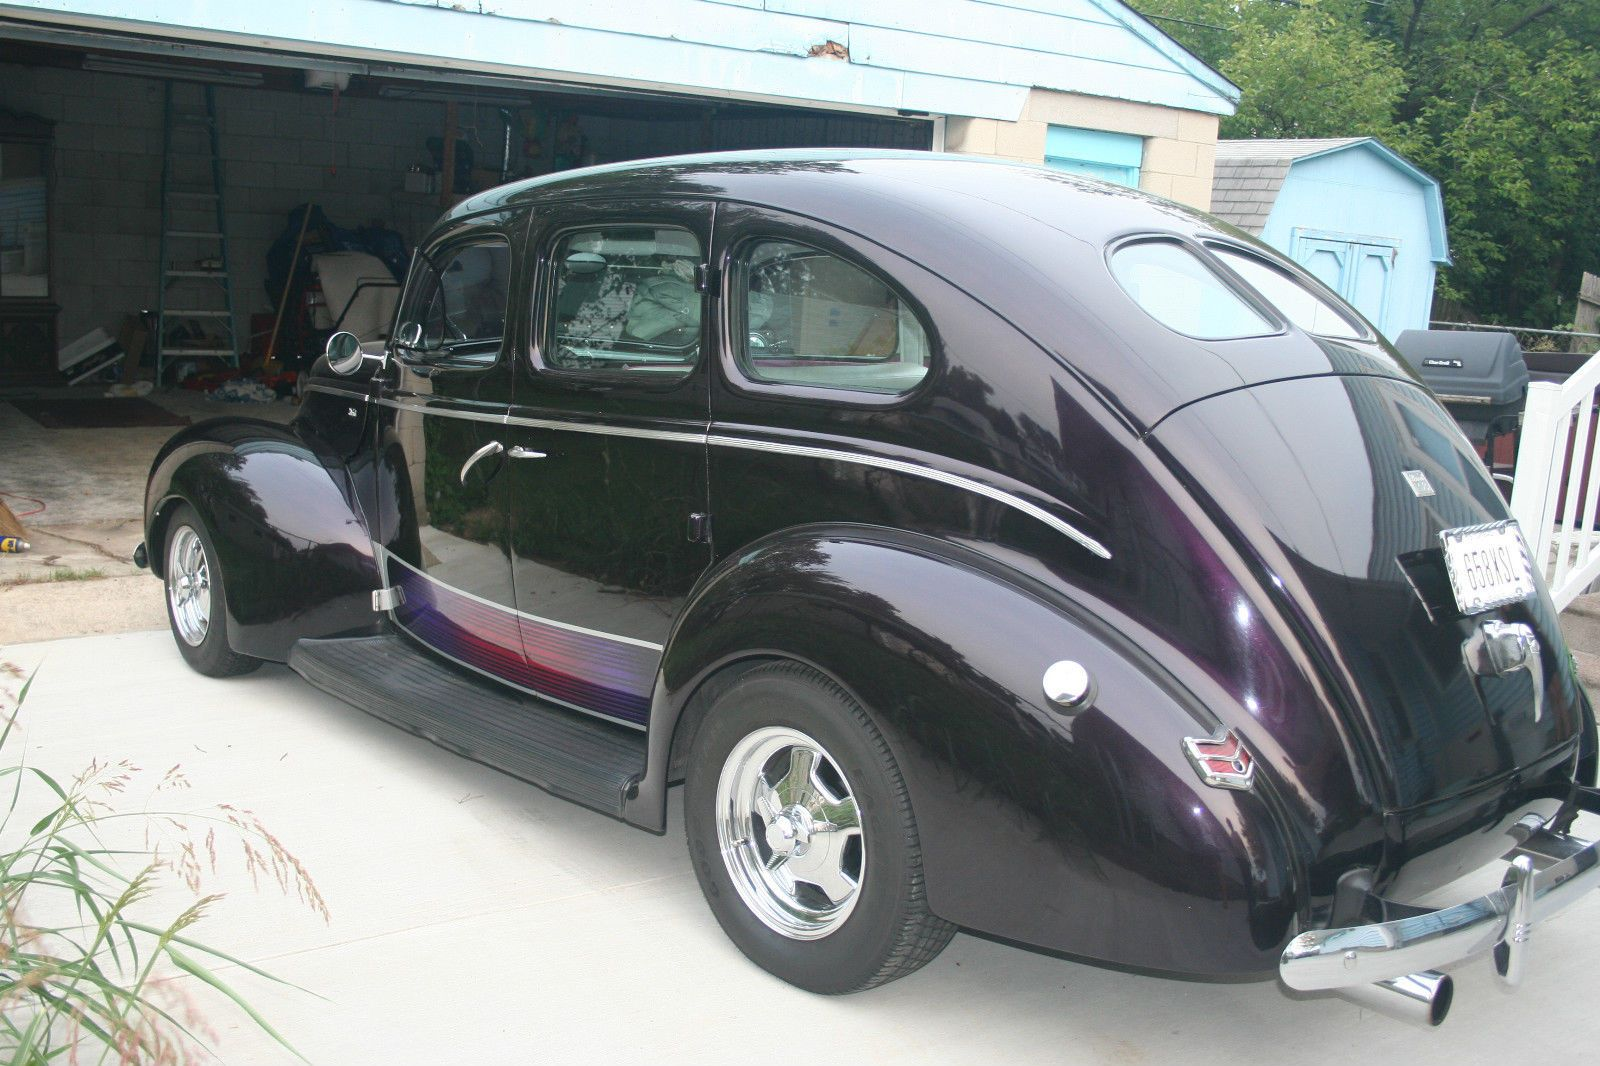 Ford Other Hot Rods Cars Hot Cars 1940 Ford